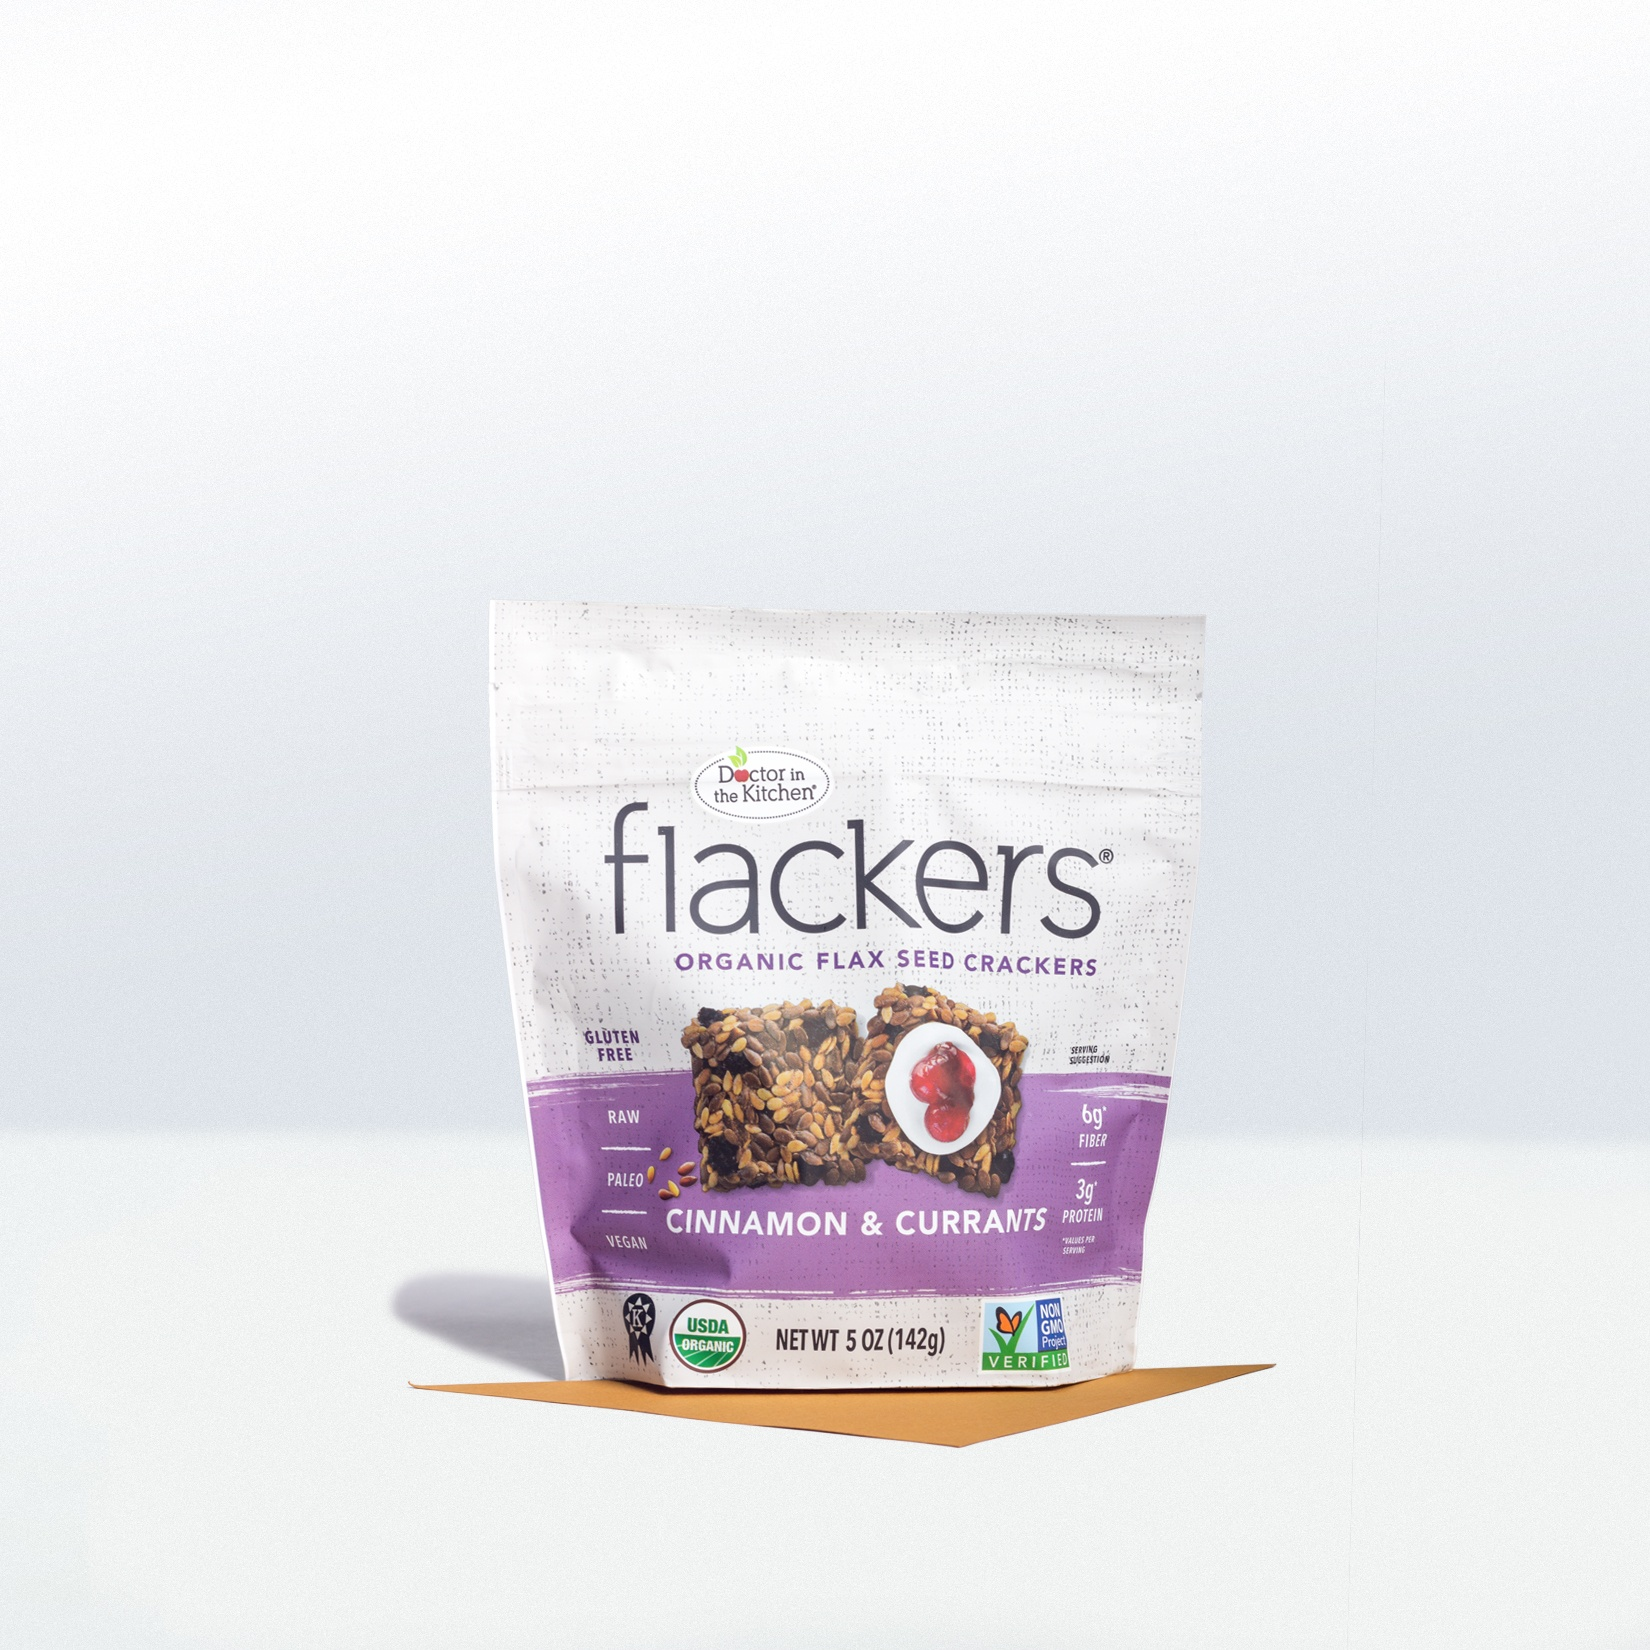 Dr. in the Kitchen-Flackers Cinnamon Currant